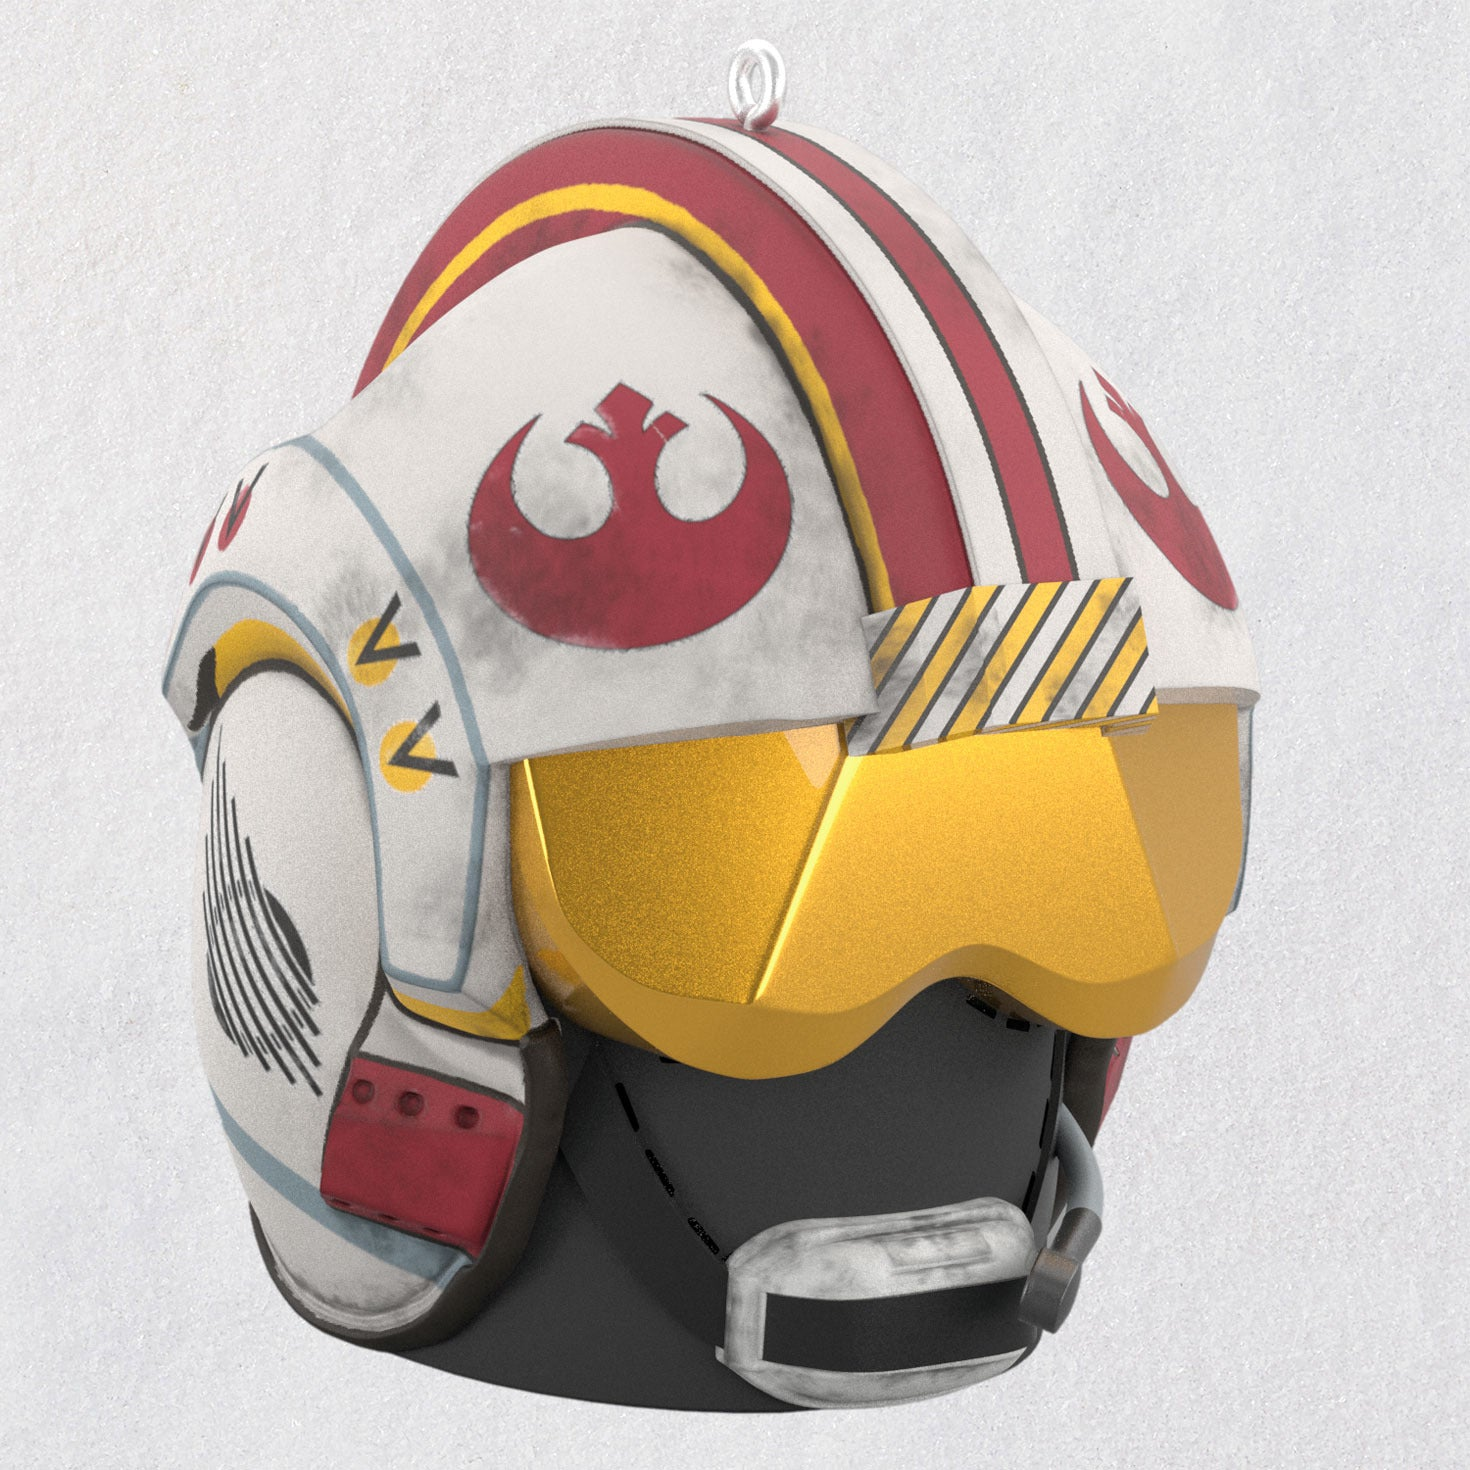 Hallmark Star Wars: A New Hope™ Red Five Rebel Pilot Helmet Ornament With Sound